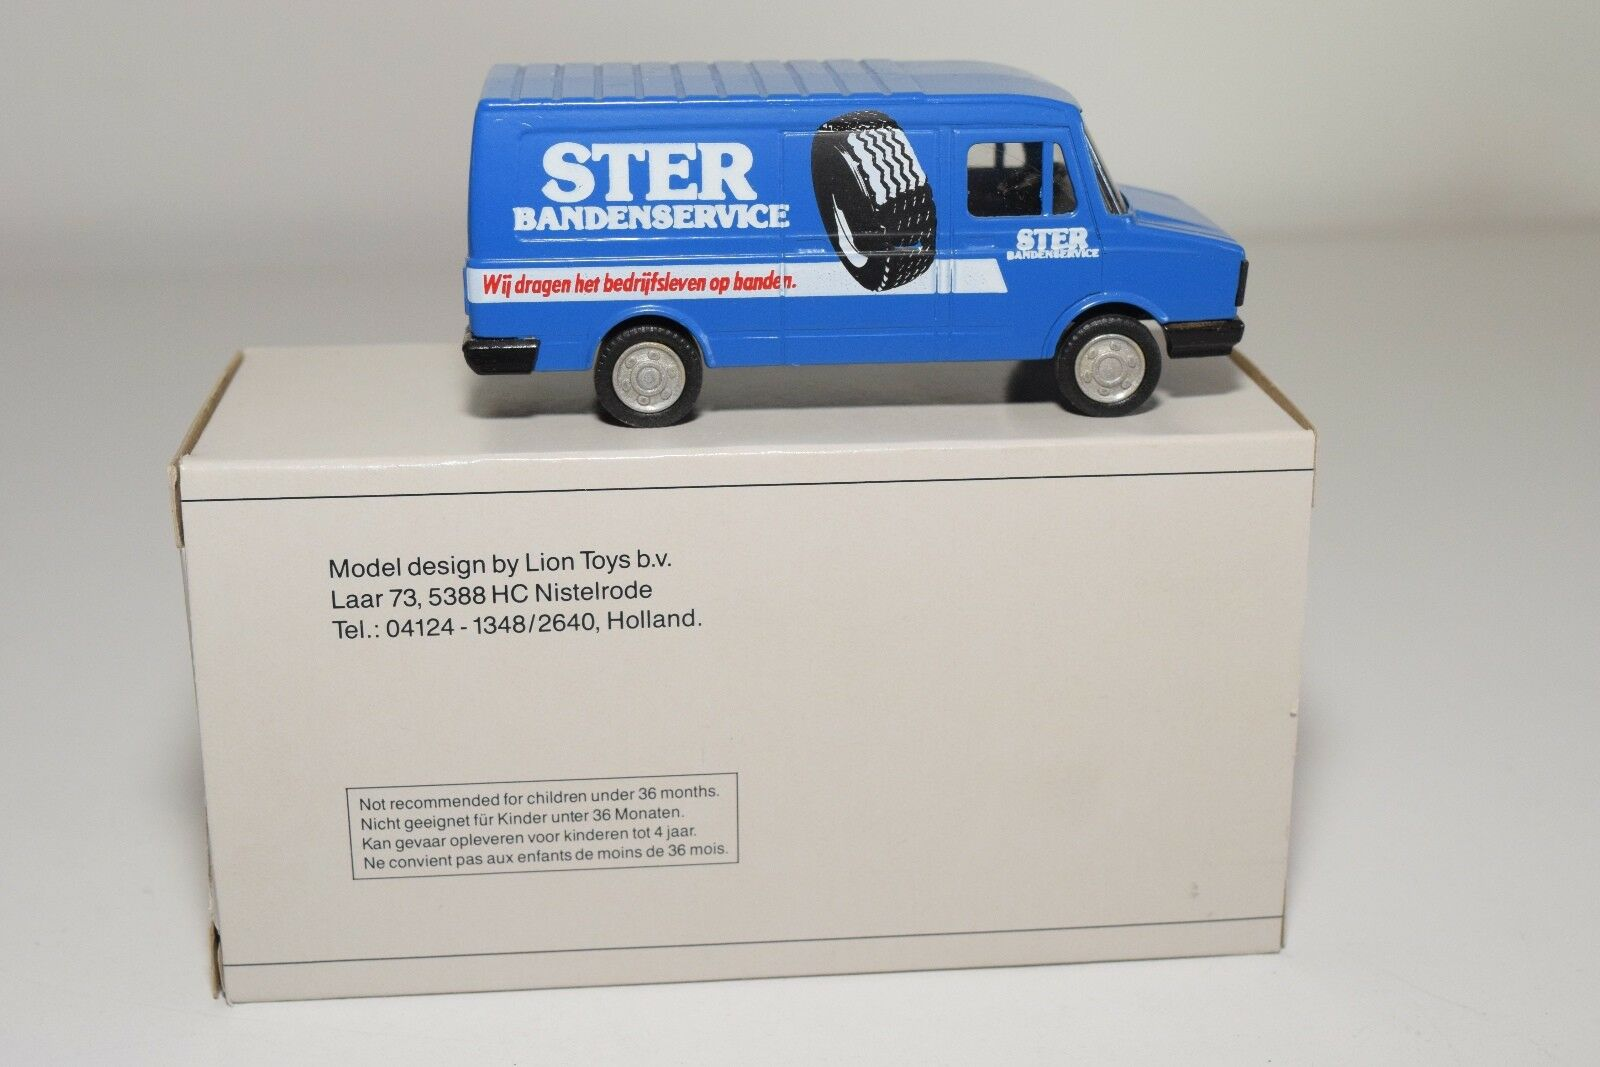 ± LION CAR DAF 400 400 400 BUS VAN STER BANDENSERVICE VERY NEAR MINT BOXED 294eed